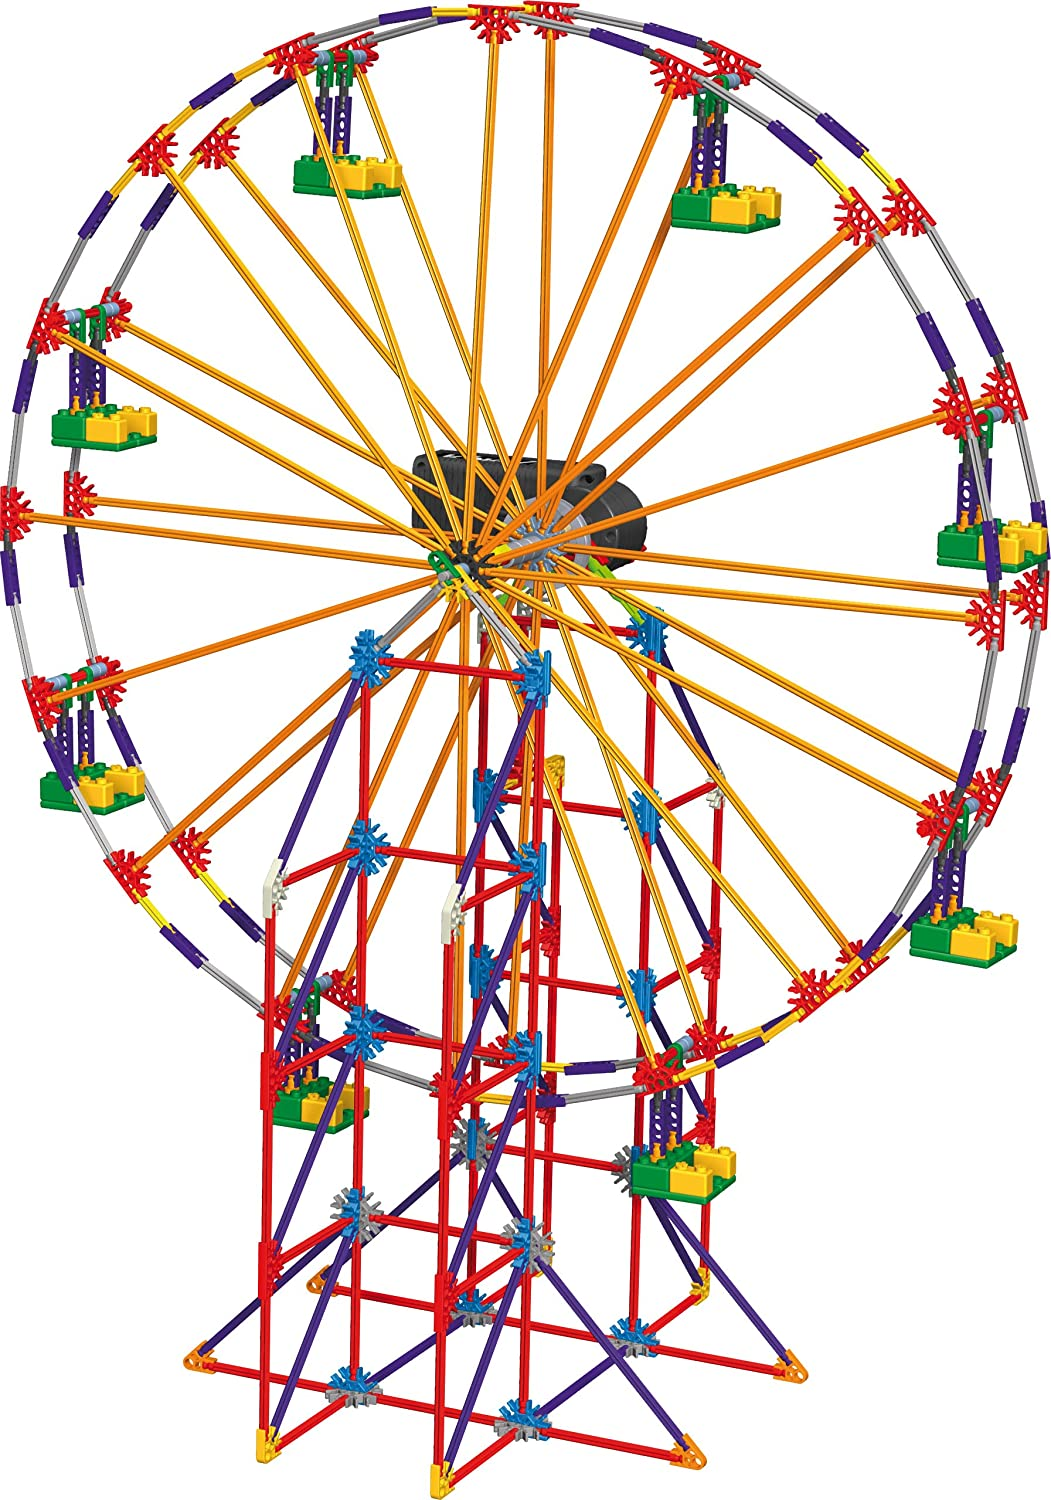 Ferris Wheel Projects Ferris Wheel Toys Games